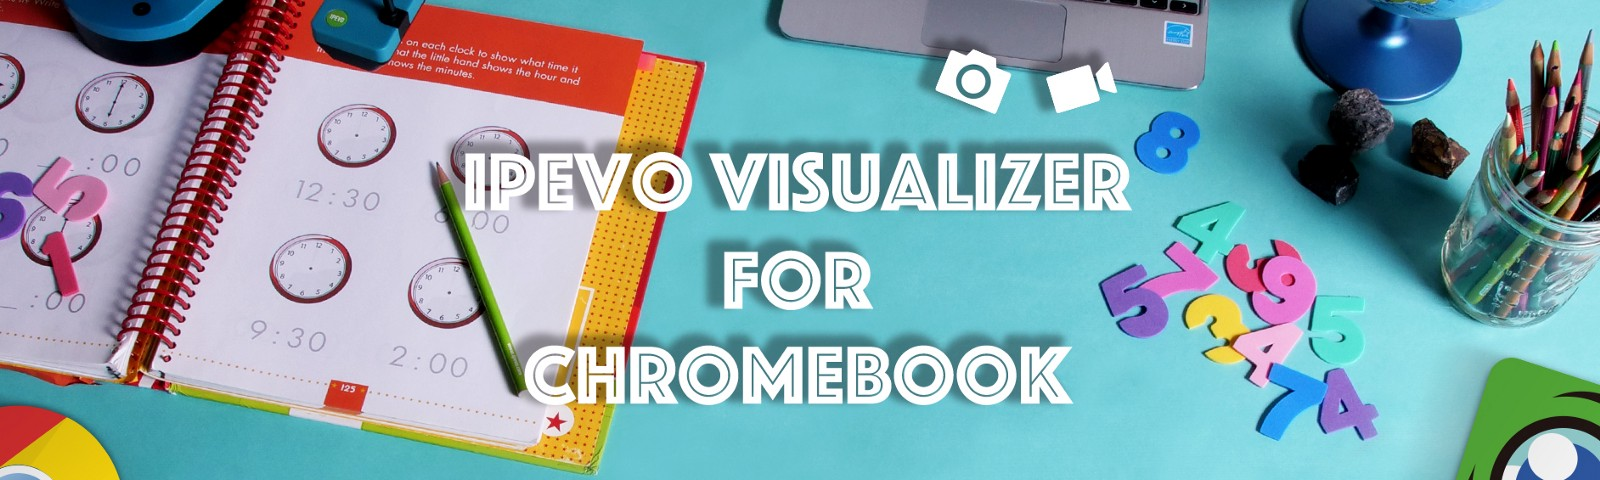 IPEVO Visualizer for Chromebook—Taking snapshots and recording videos